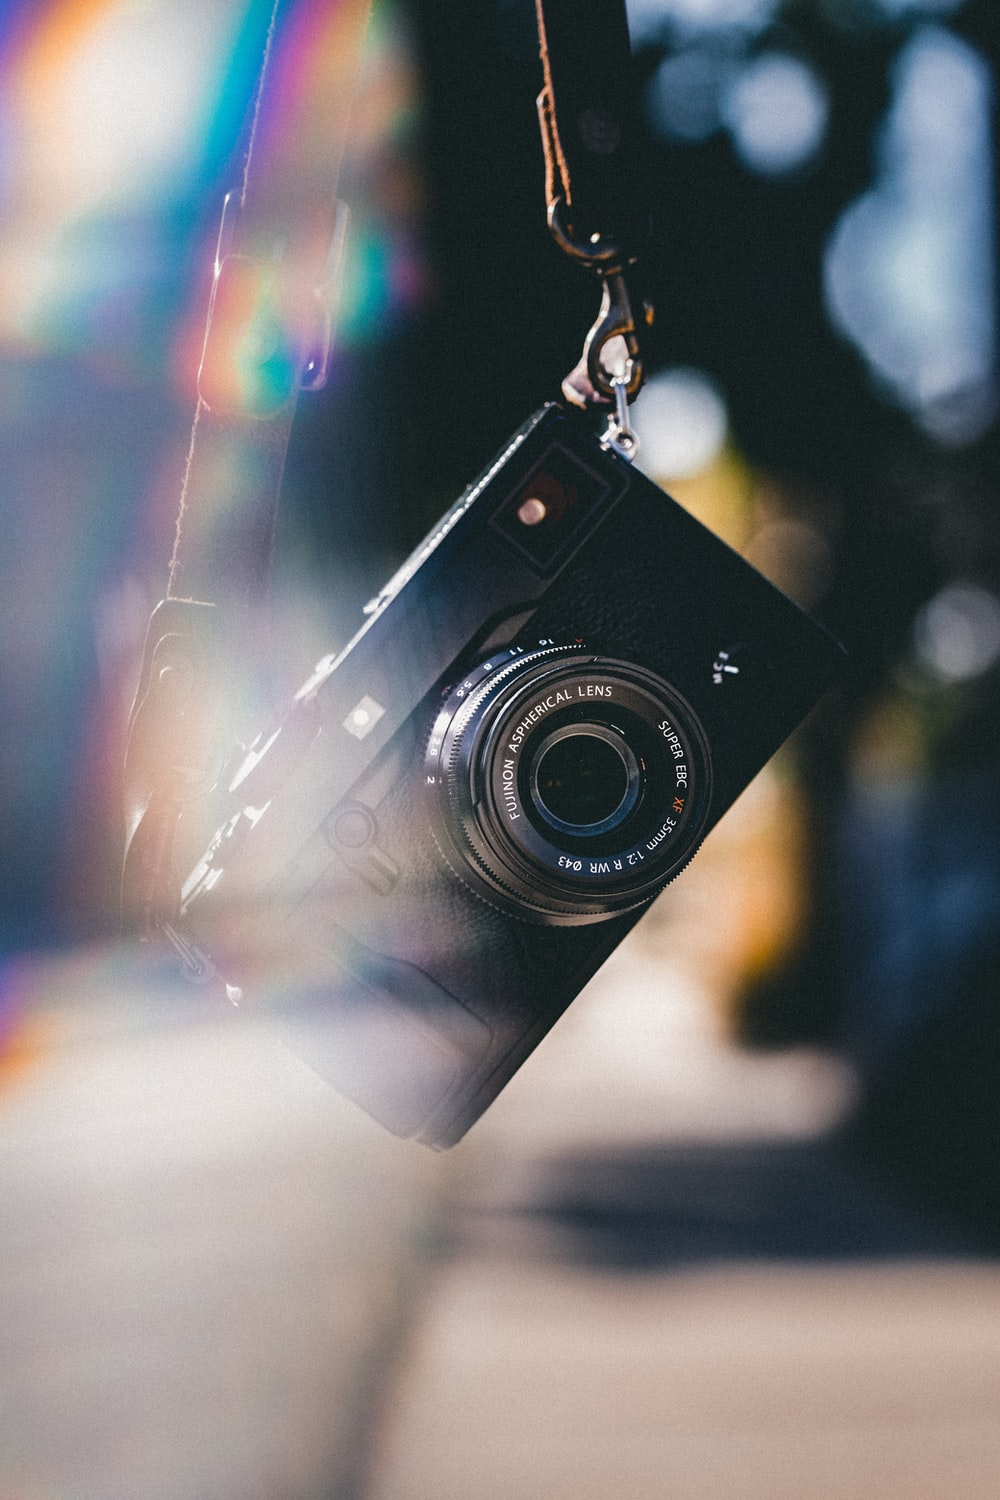 black point-and-shoot camera in selective focus photography